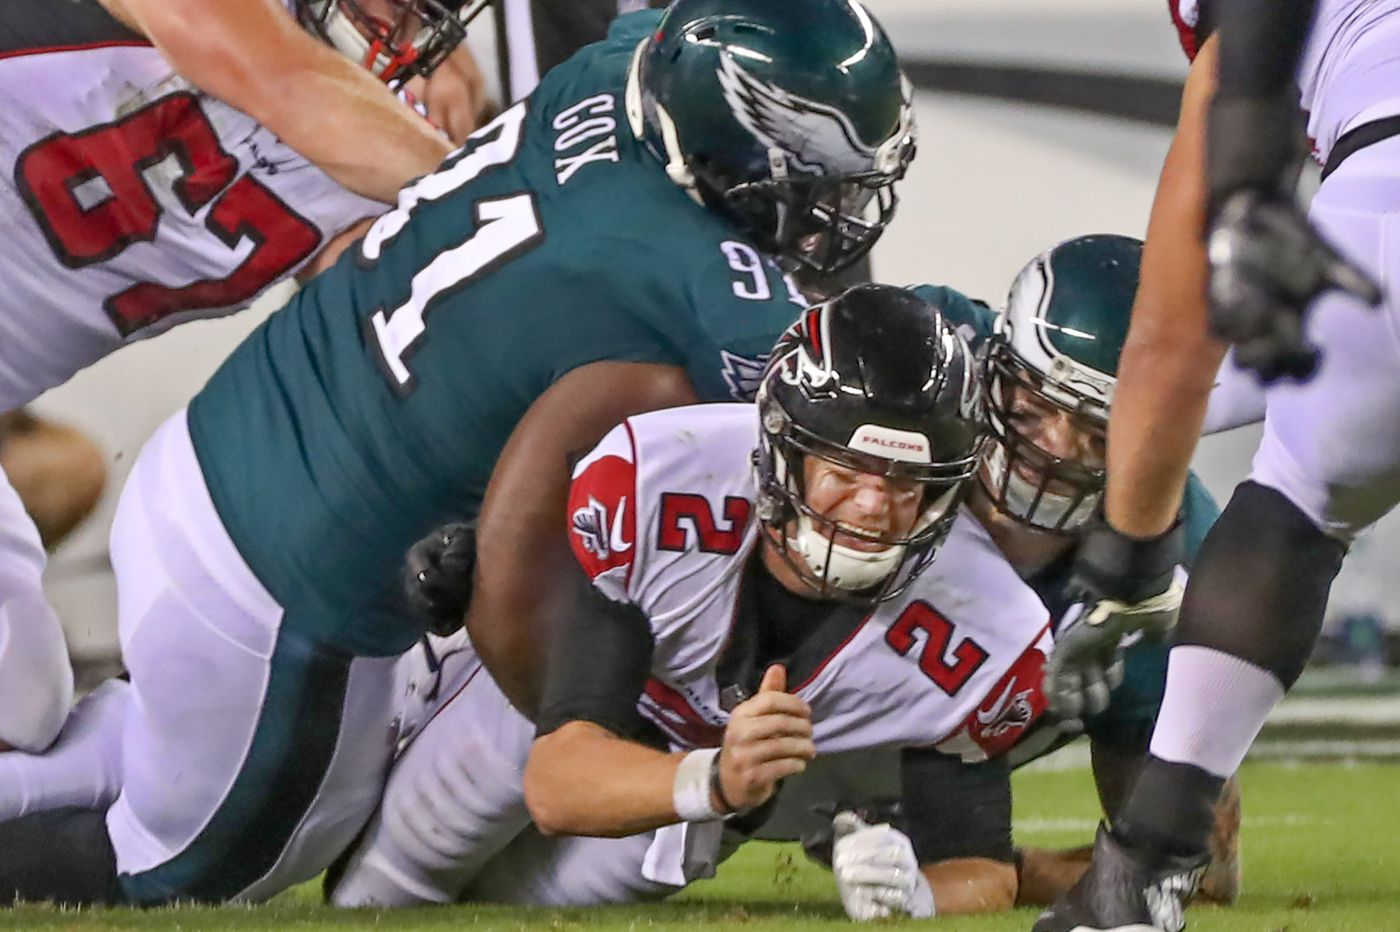 Restructuring Fletcher Cox's contract could help Eagles add weapon — perhaps LeSean McCoy? — or keep veterans